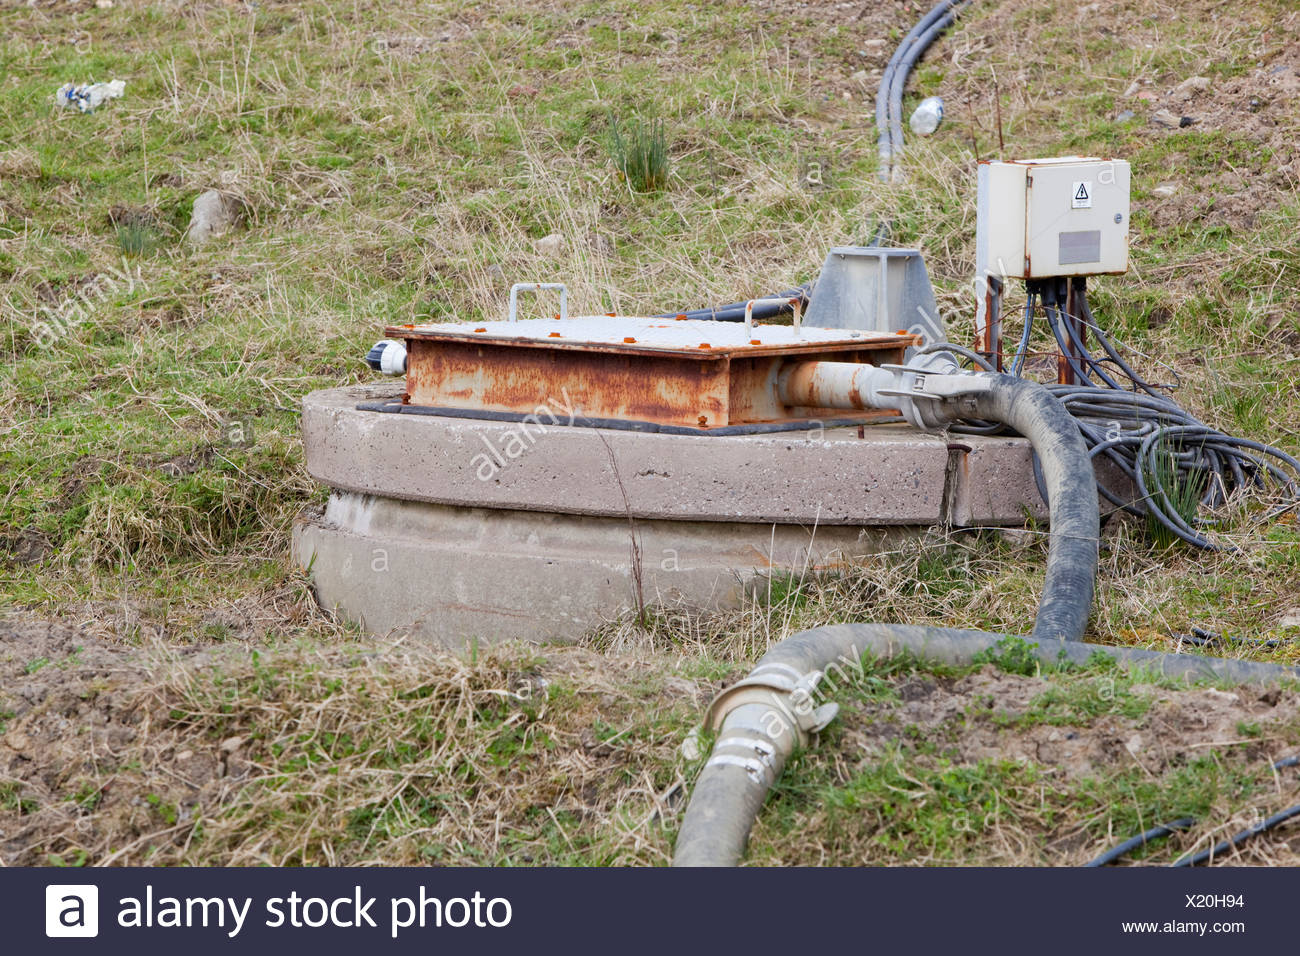 Methane being captured from the old landfill tip in Clitheroe Lancashire UK - Stock Image